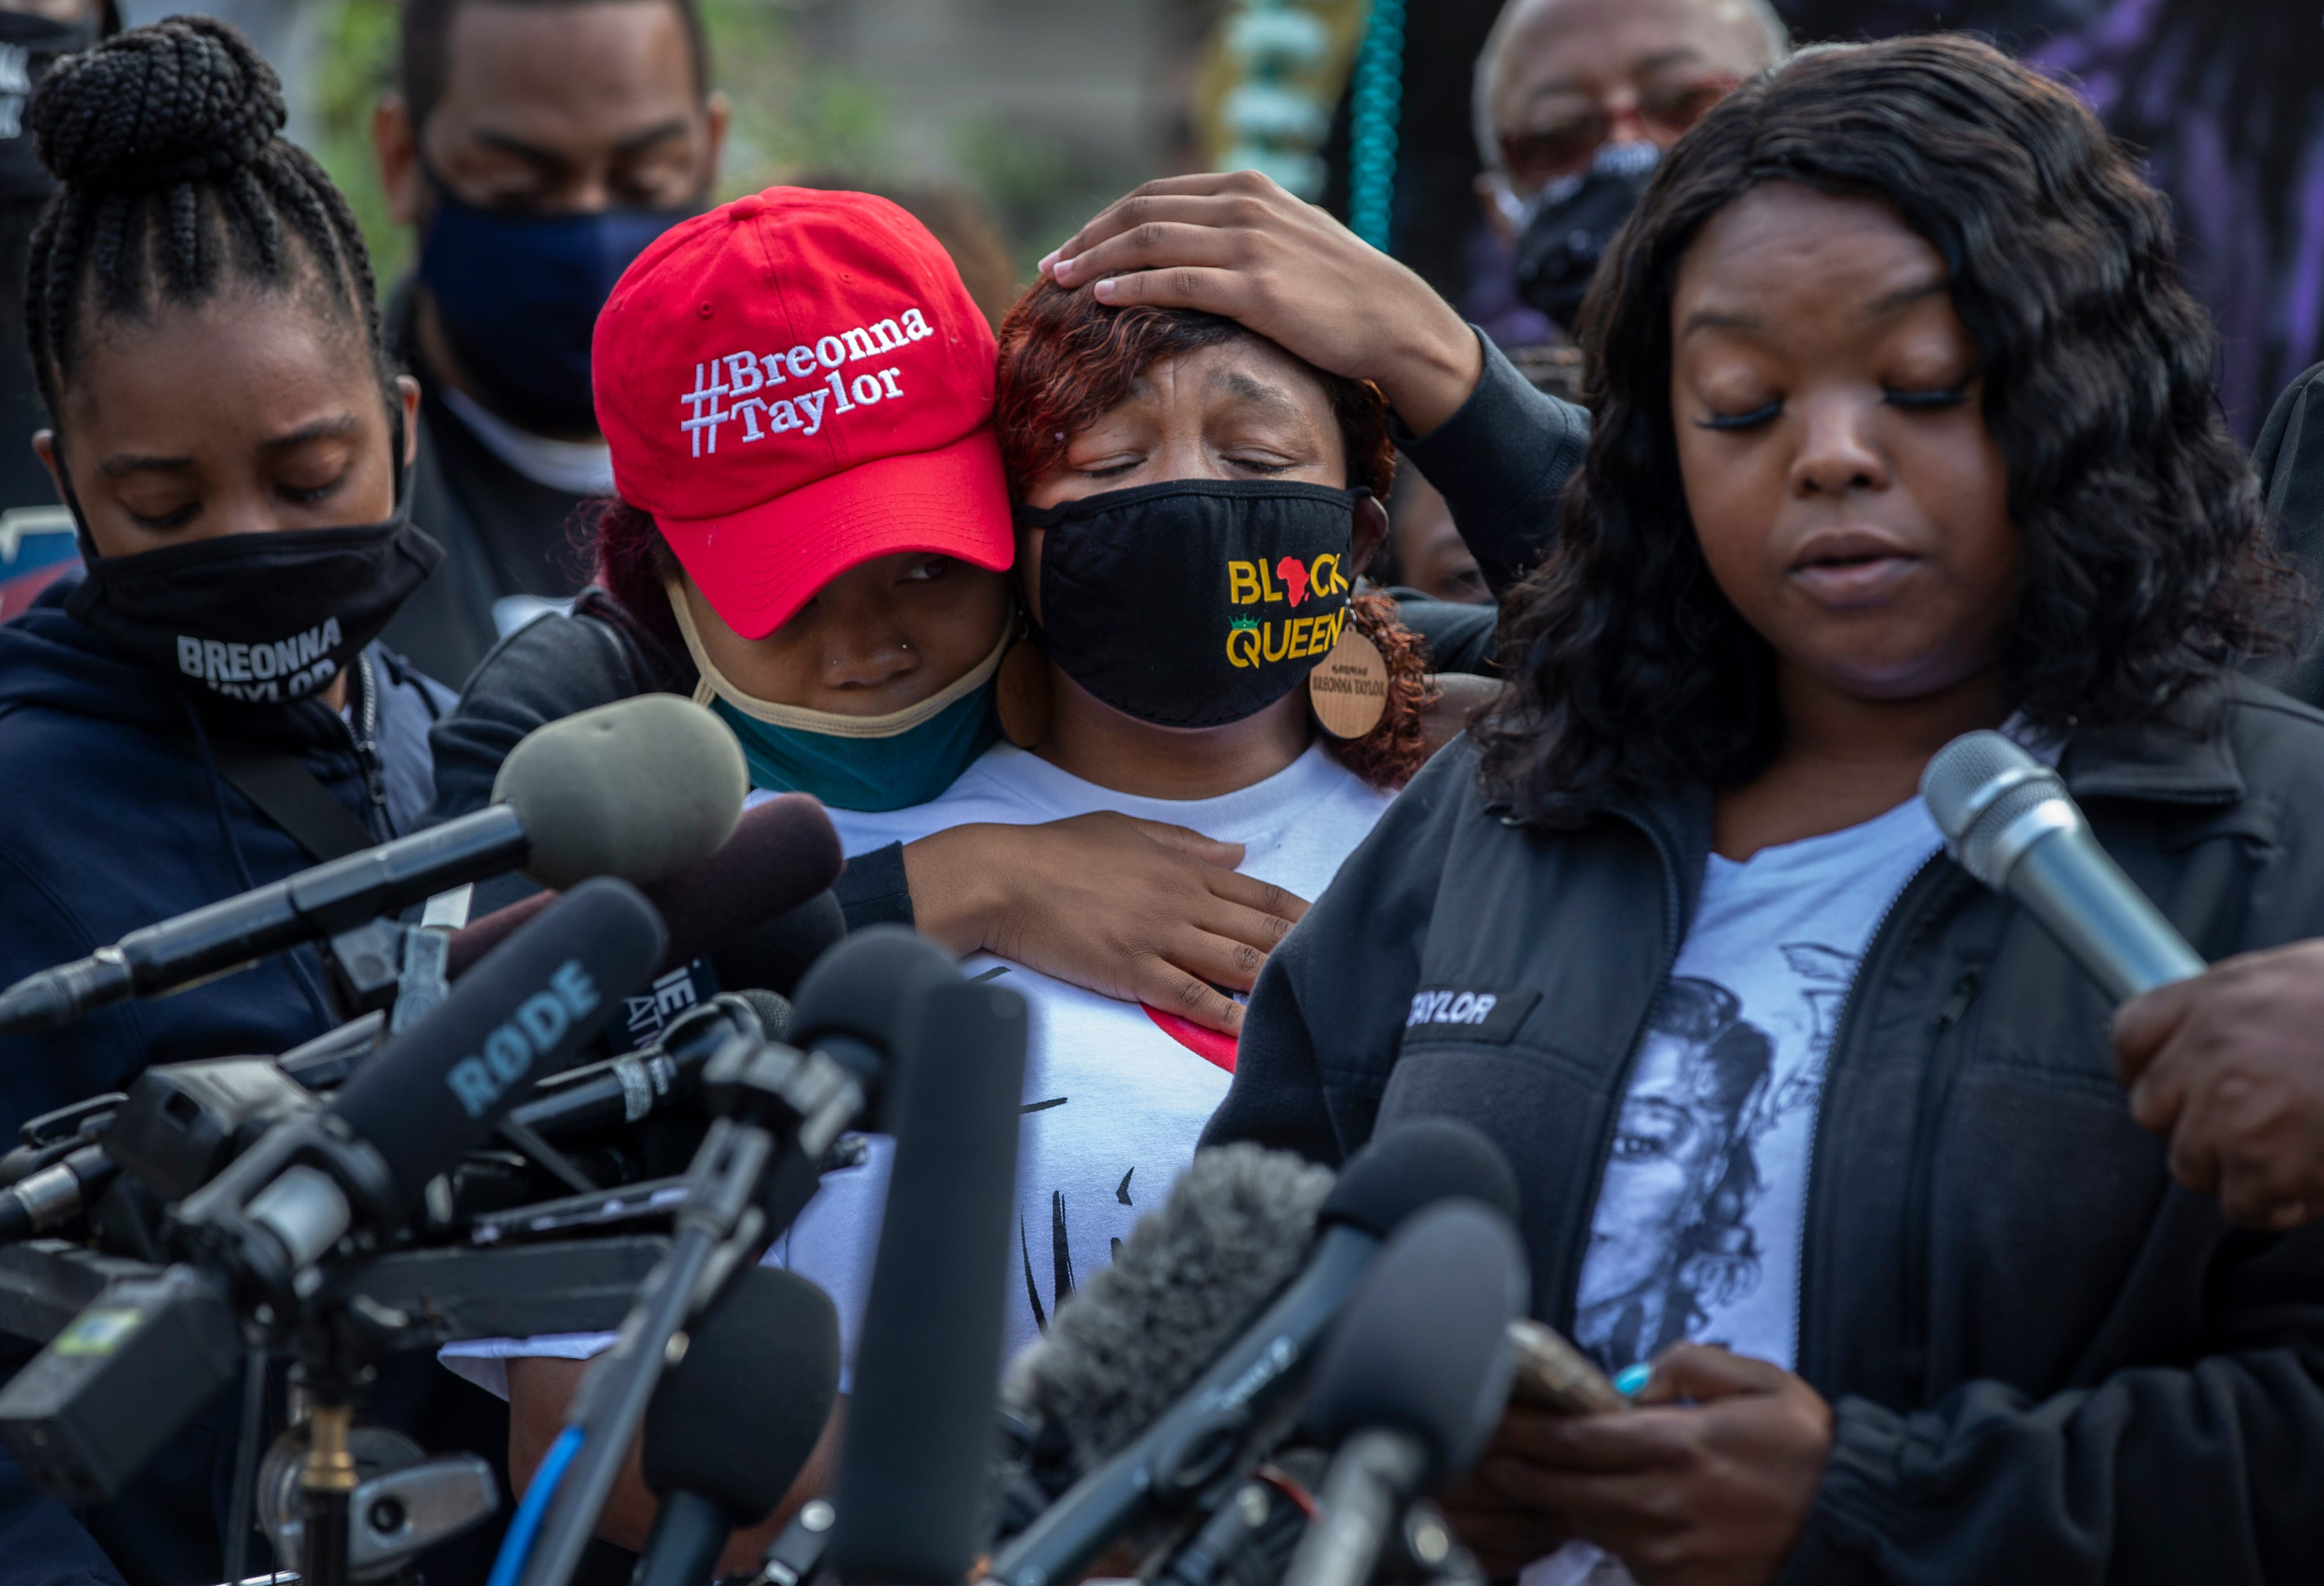 Tamika Palmer, mother of Breonna Taylor, is comforted by her daughter Juniyah, while listening to her sister Bianca Austin speak during a press conference. The gathering was called to refute the Kentucky Attorney General's grand jury's recommendations in Breonna Taylor's death. Sept. 25, 2020